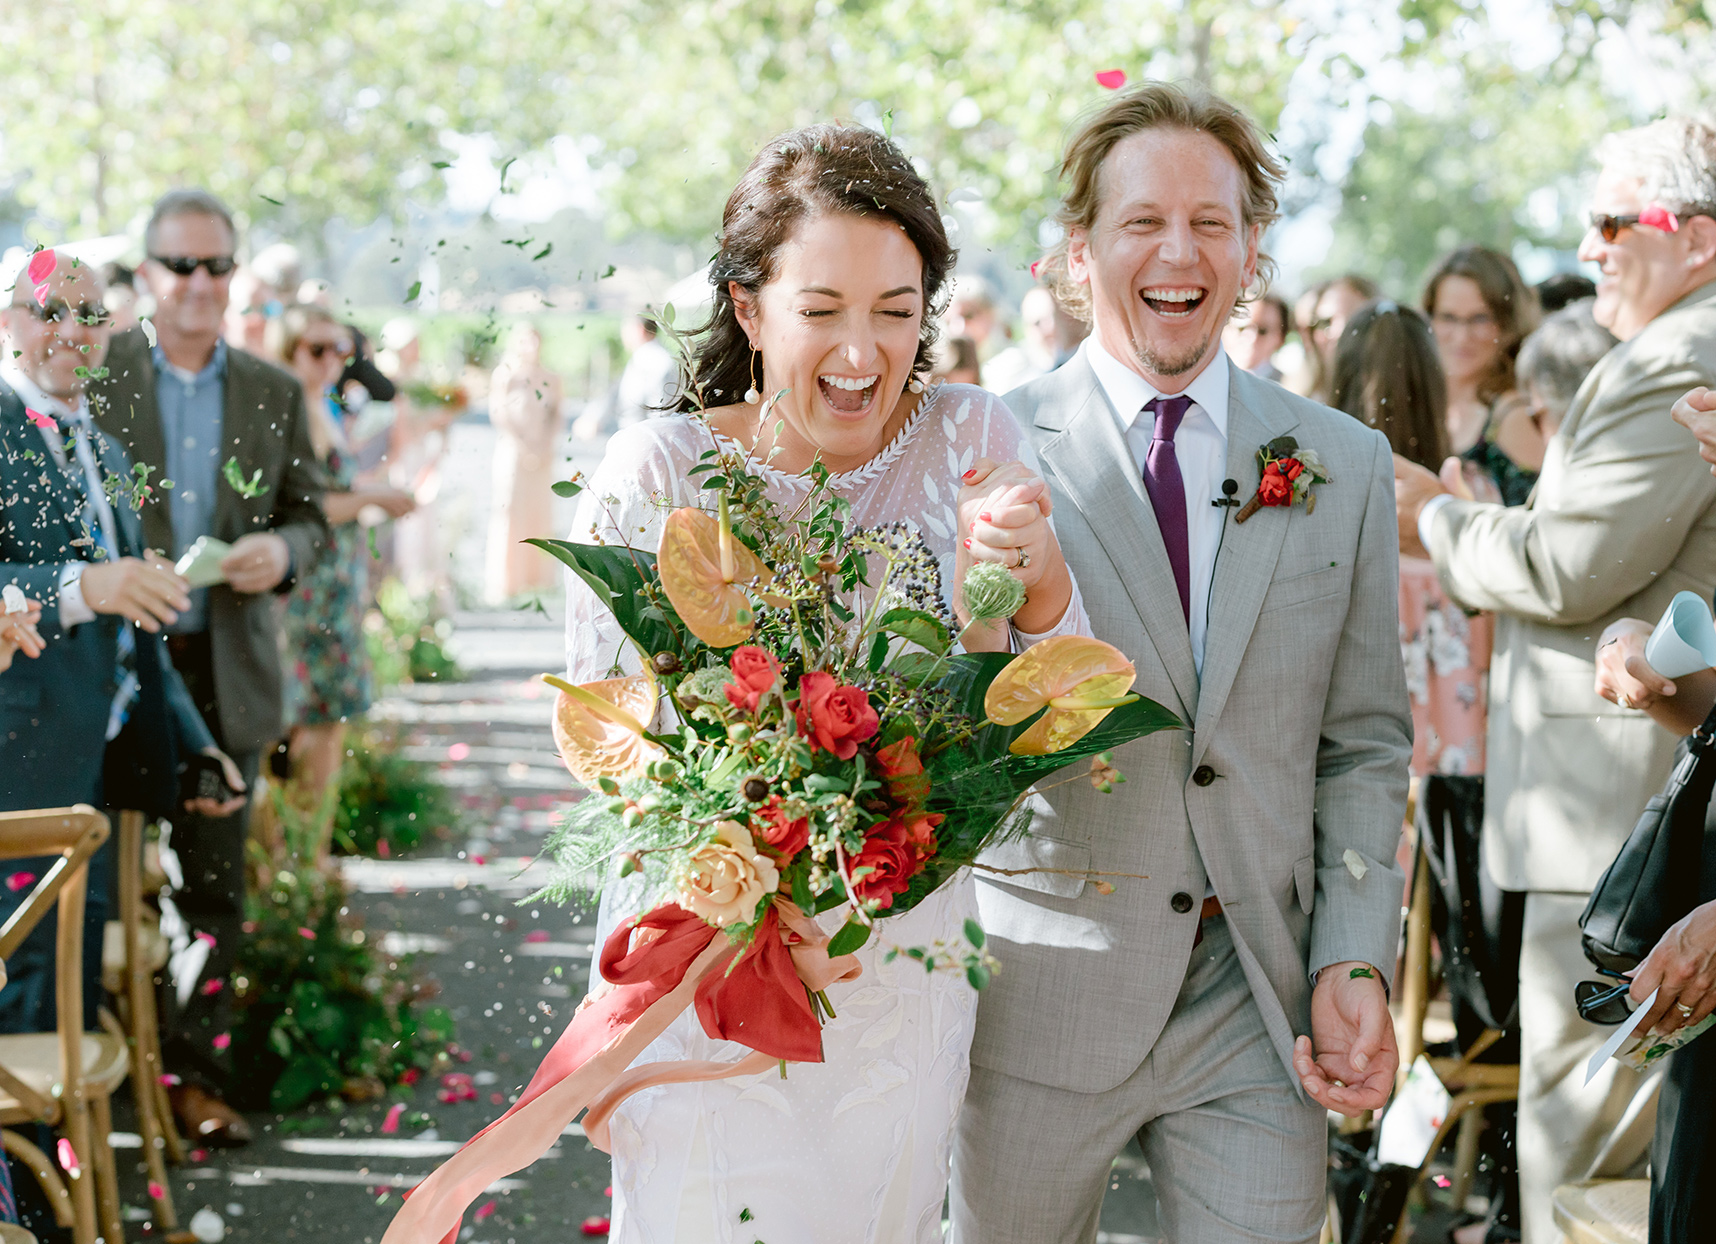 wedding couple holding hands as they leave ceremony showered in petals